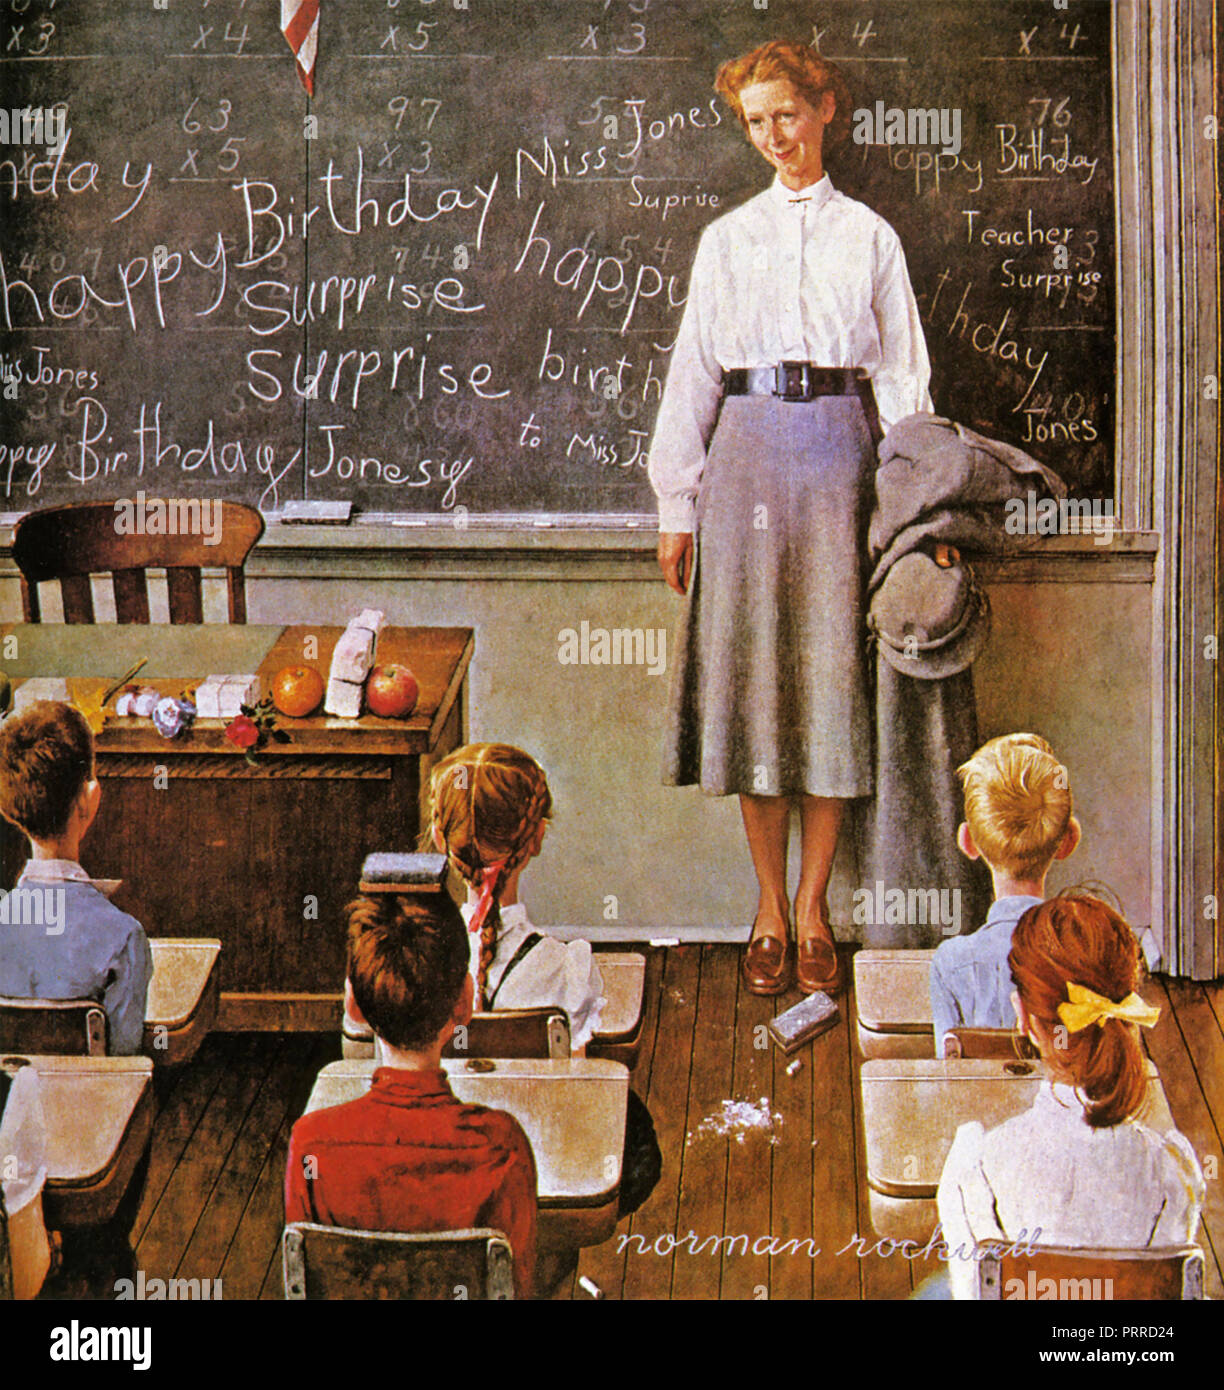 NORMAN ROCKWELL (1894-1978) American author, painter and